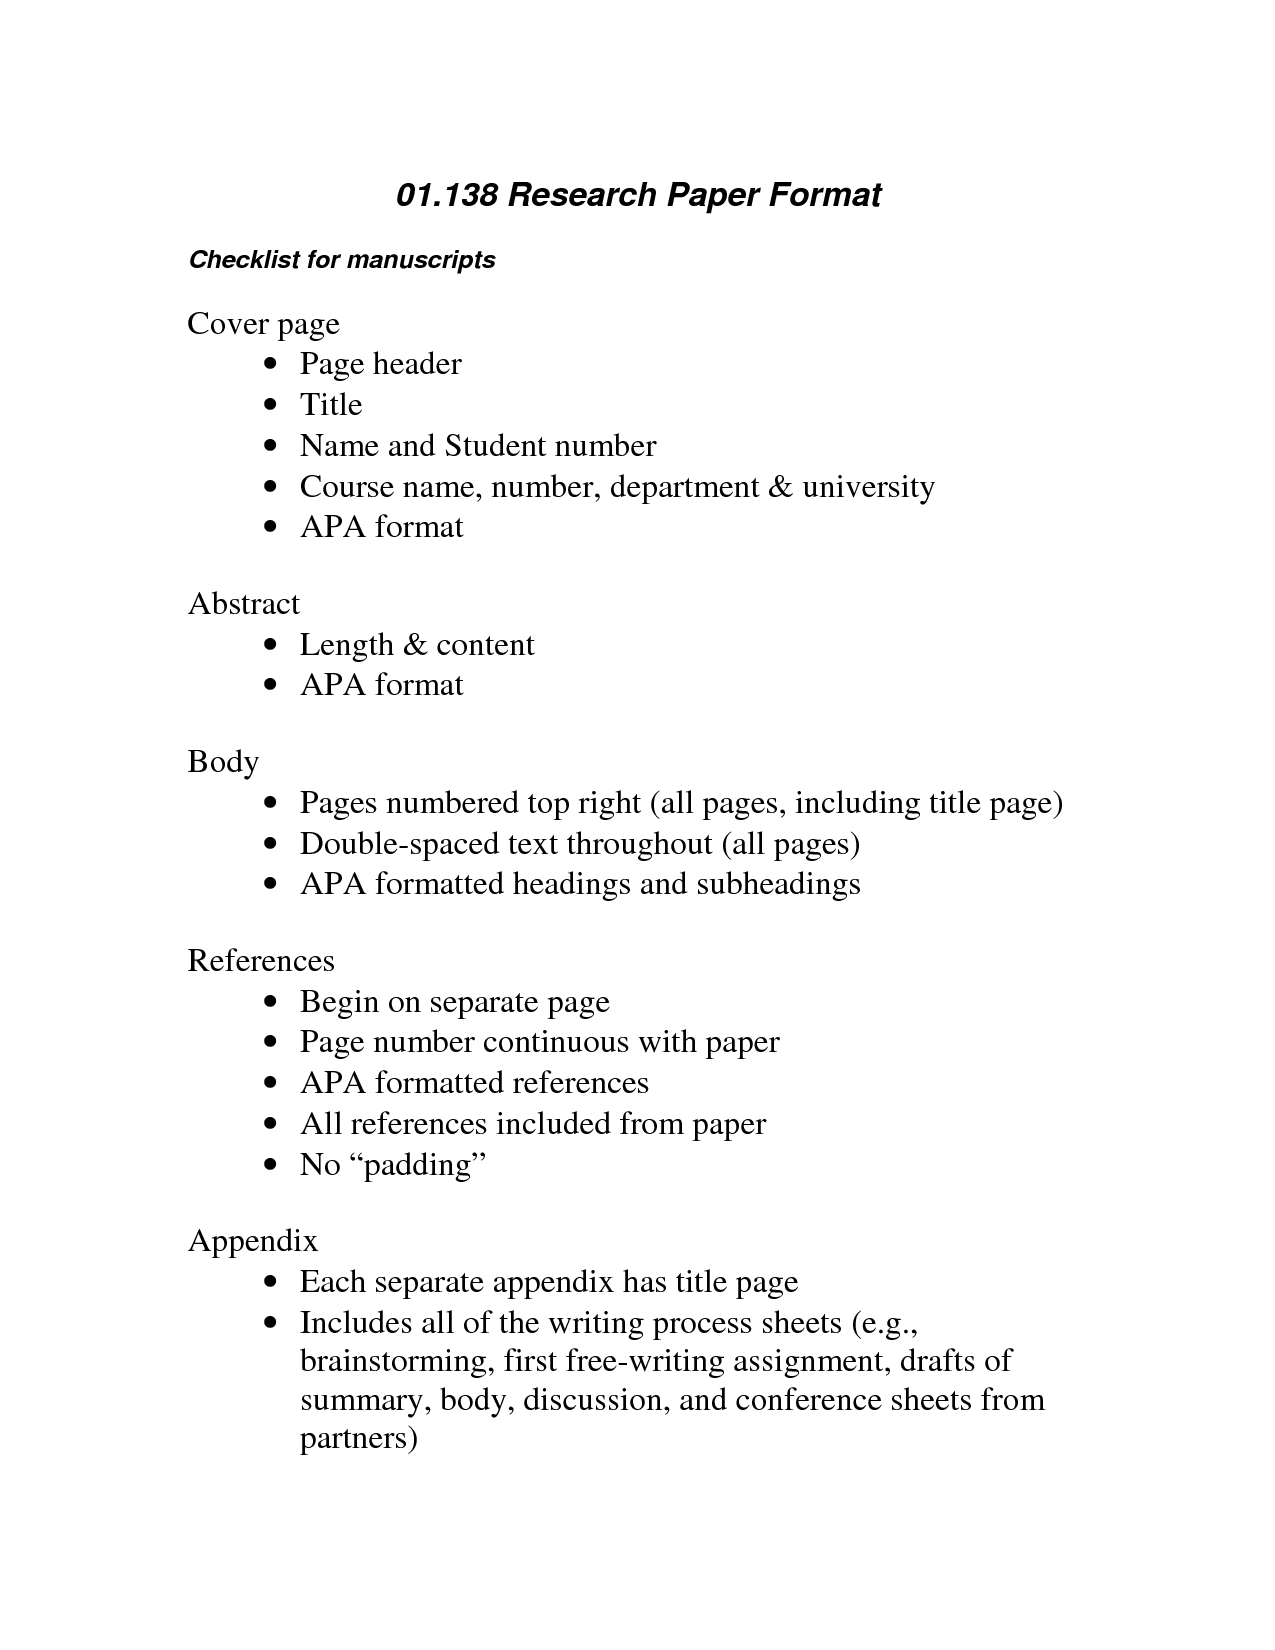 College writing apa format